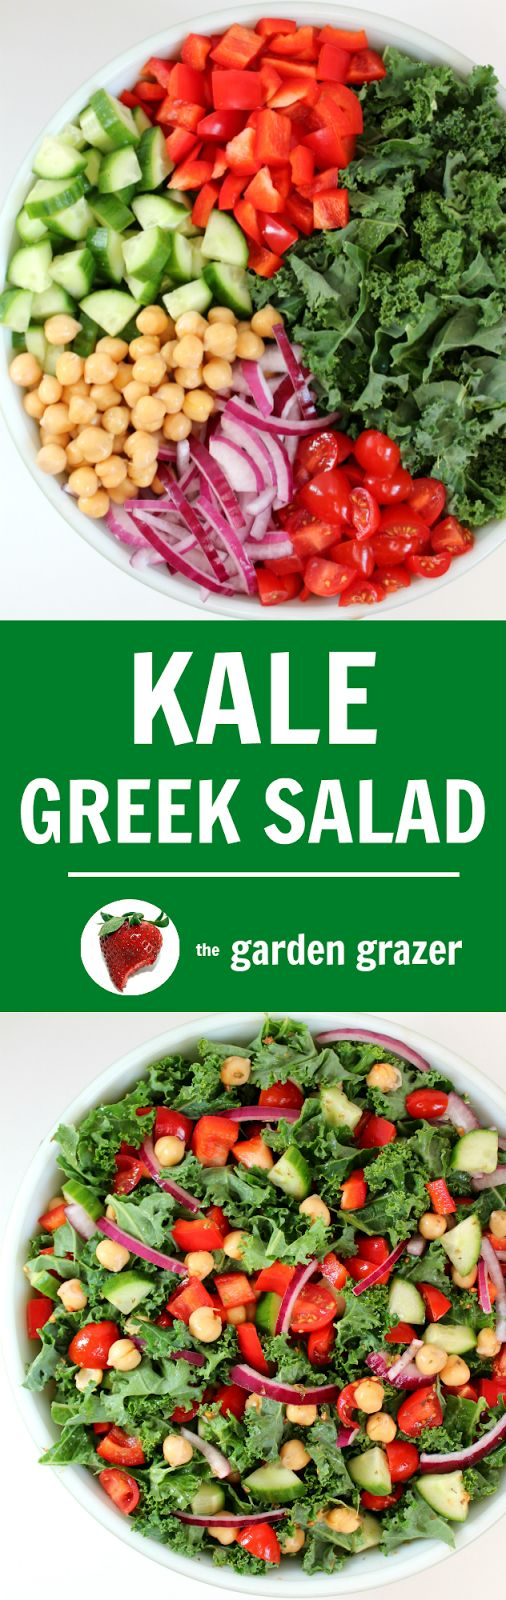 EASY 9-ingredient loaded Kale Greek Salad! Great for packed lunches too!! (vegan, gluten-free)